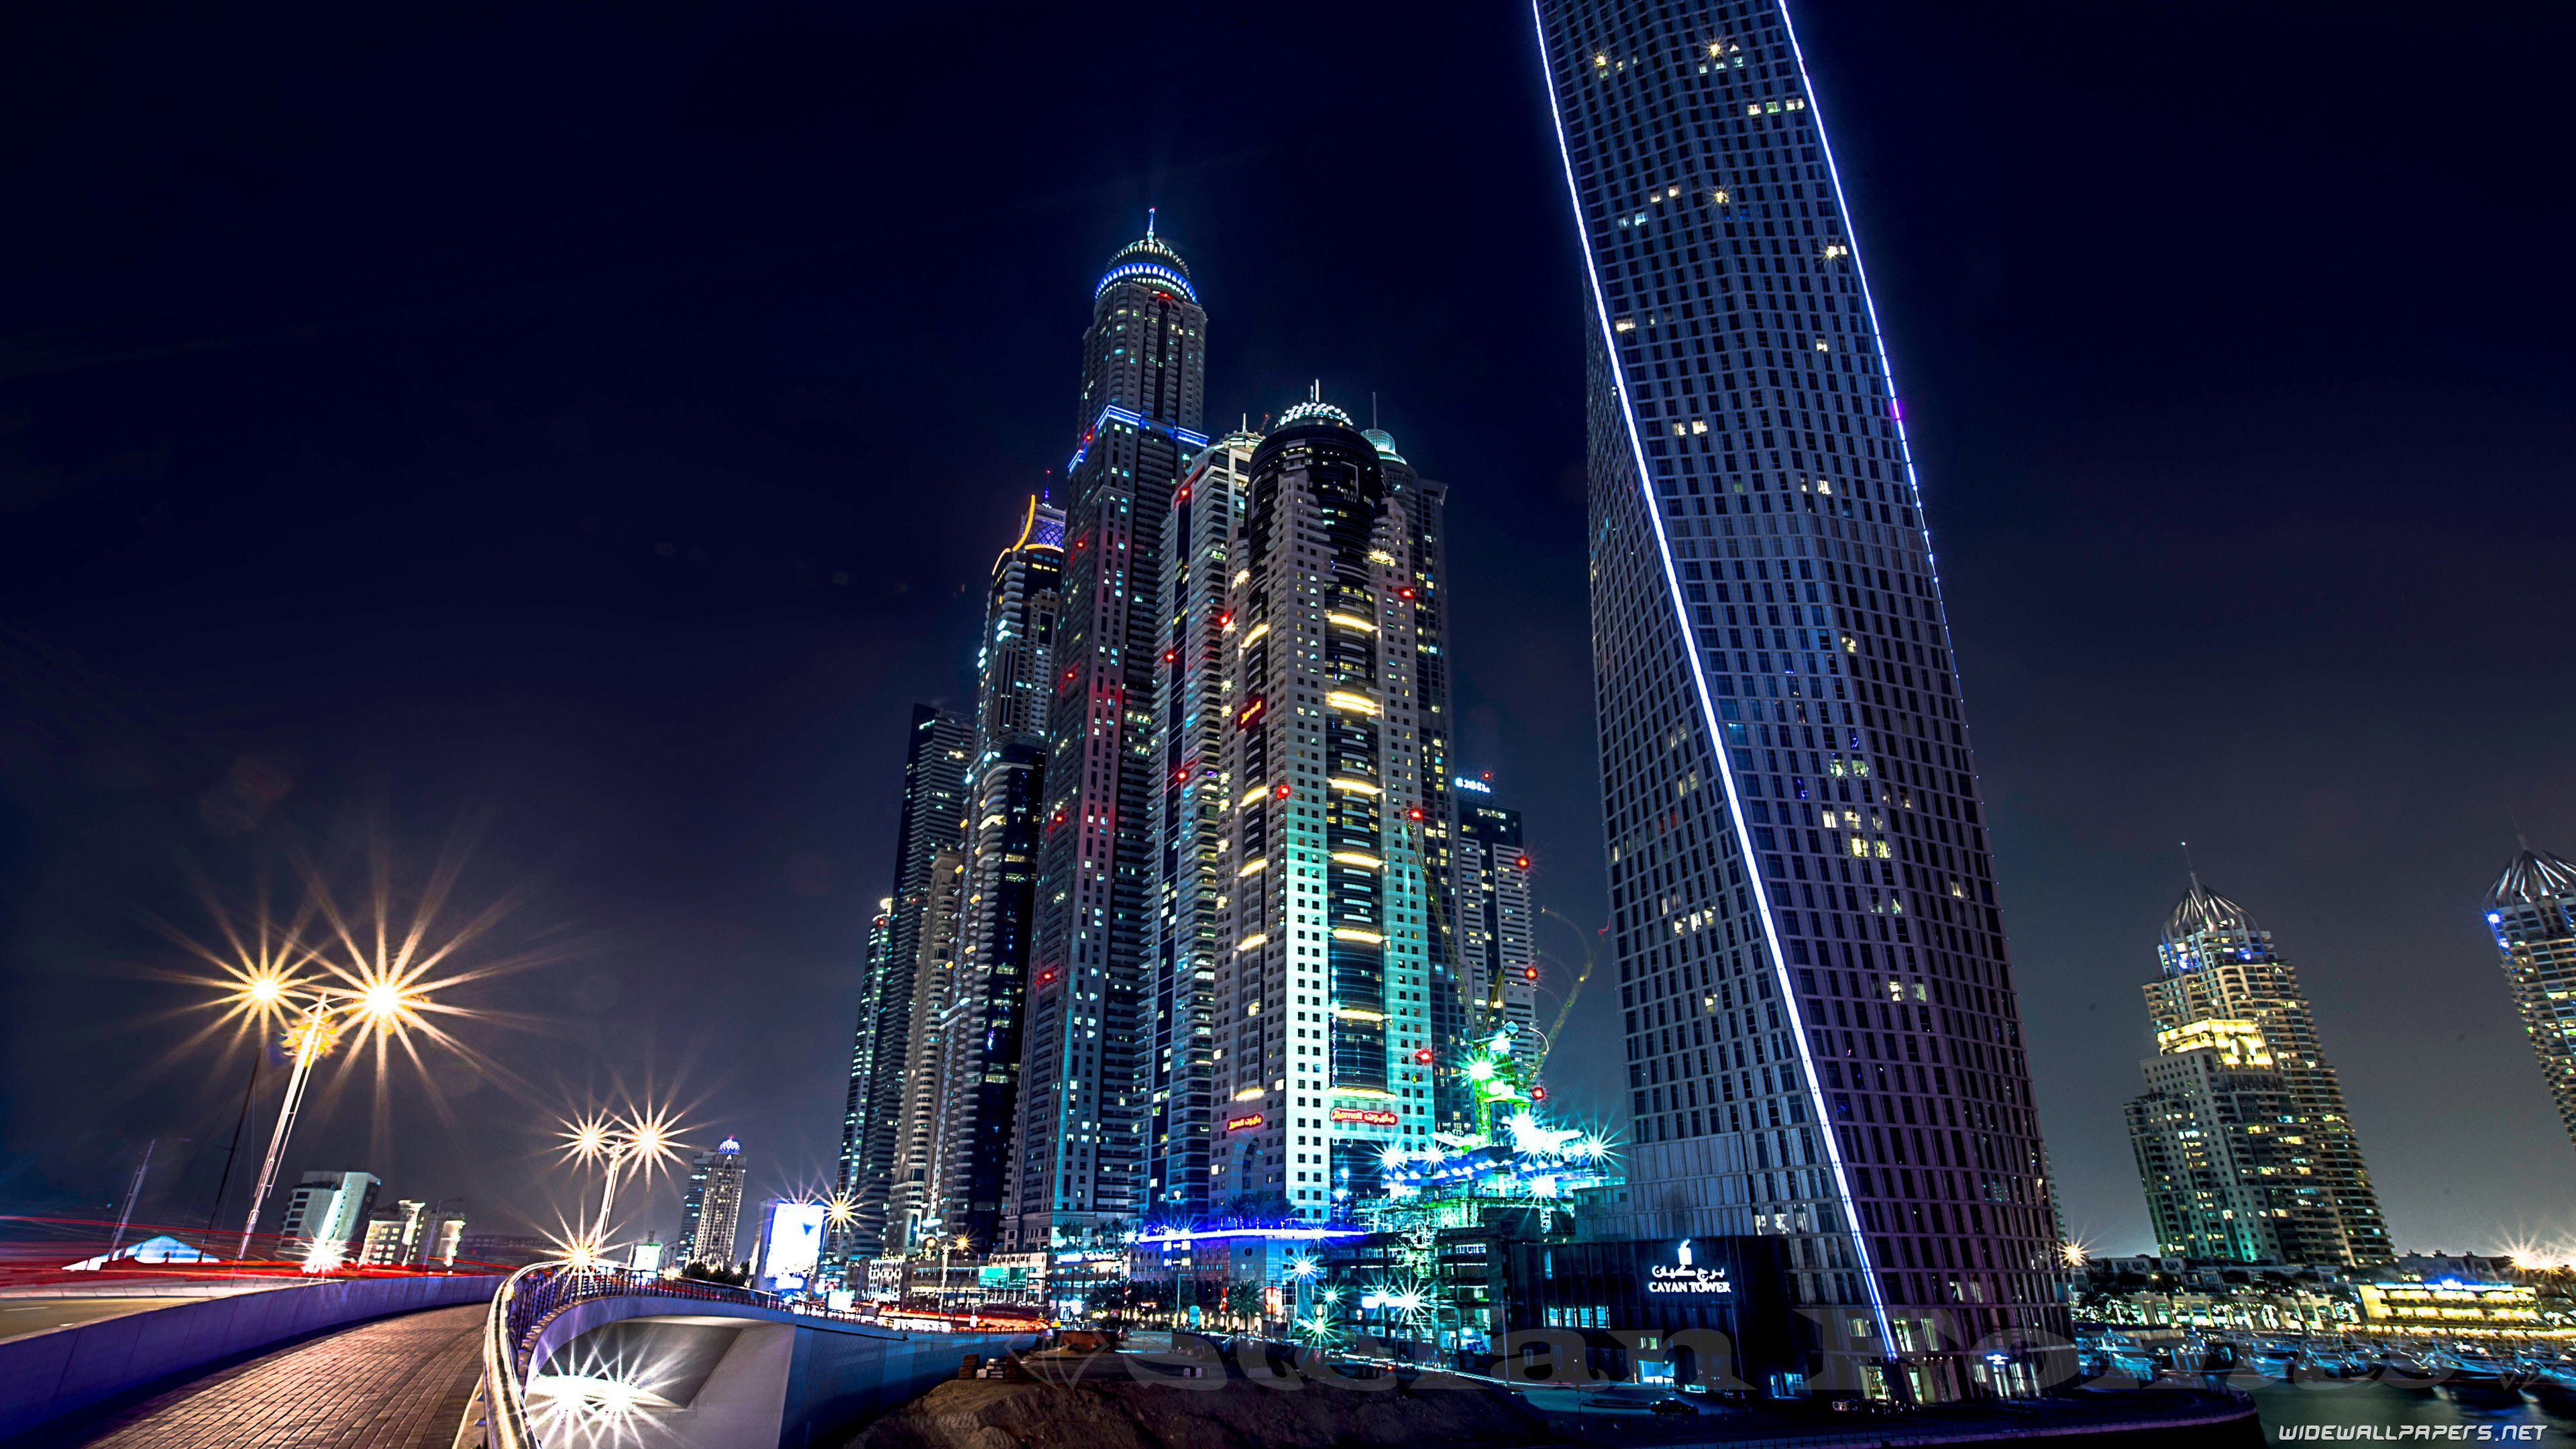 4k Background Wallpapers: Dubai Wallpapers And Photos 4K Full HD